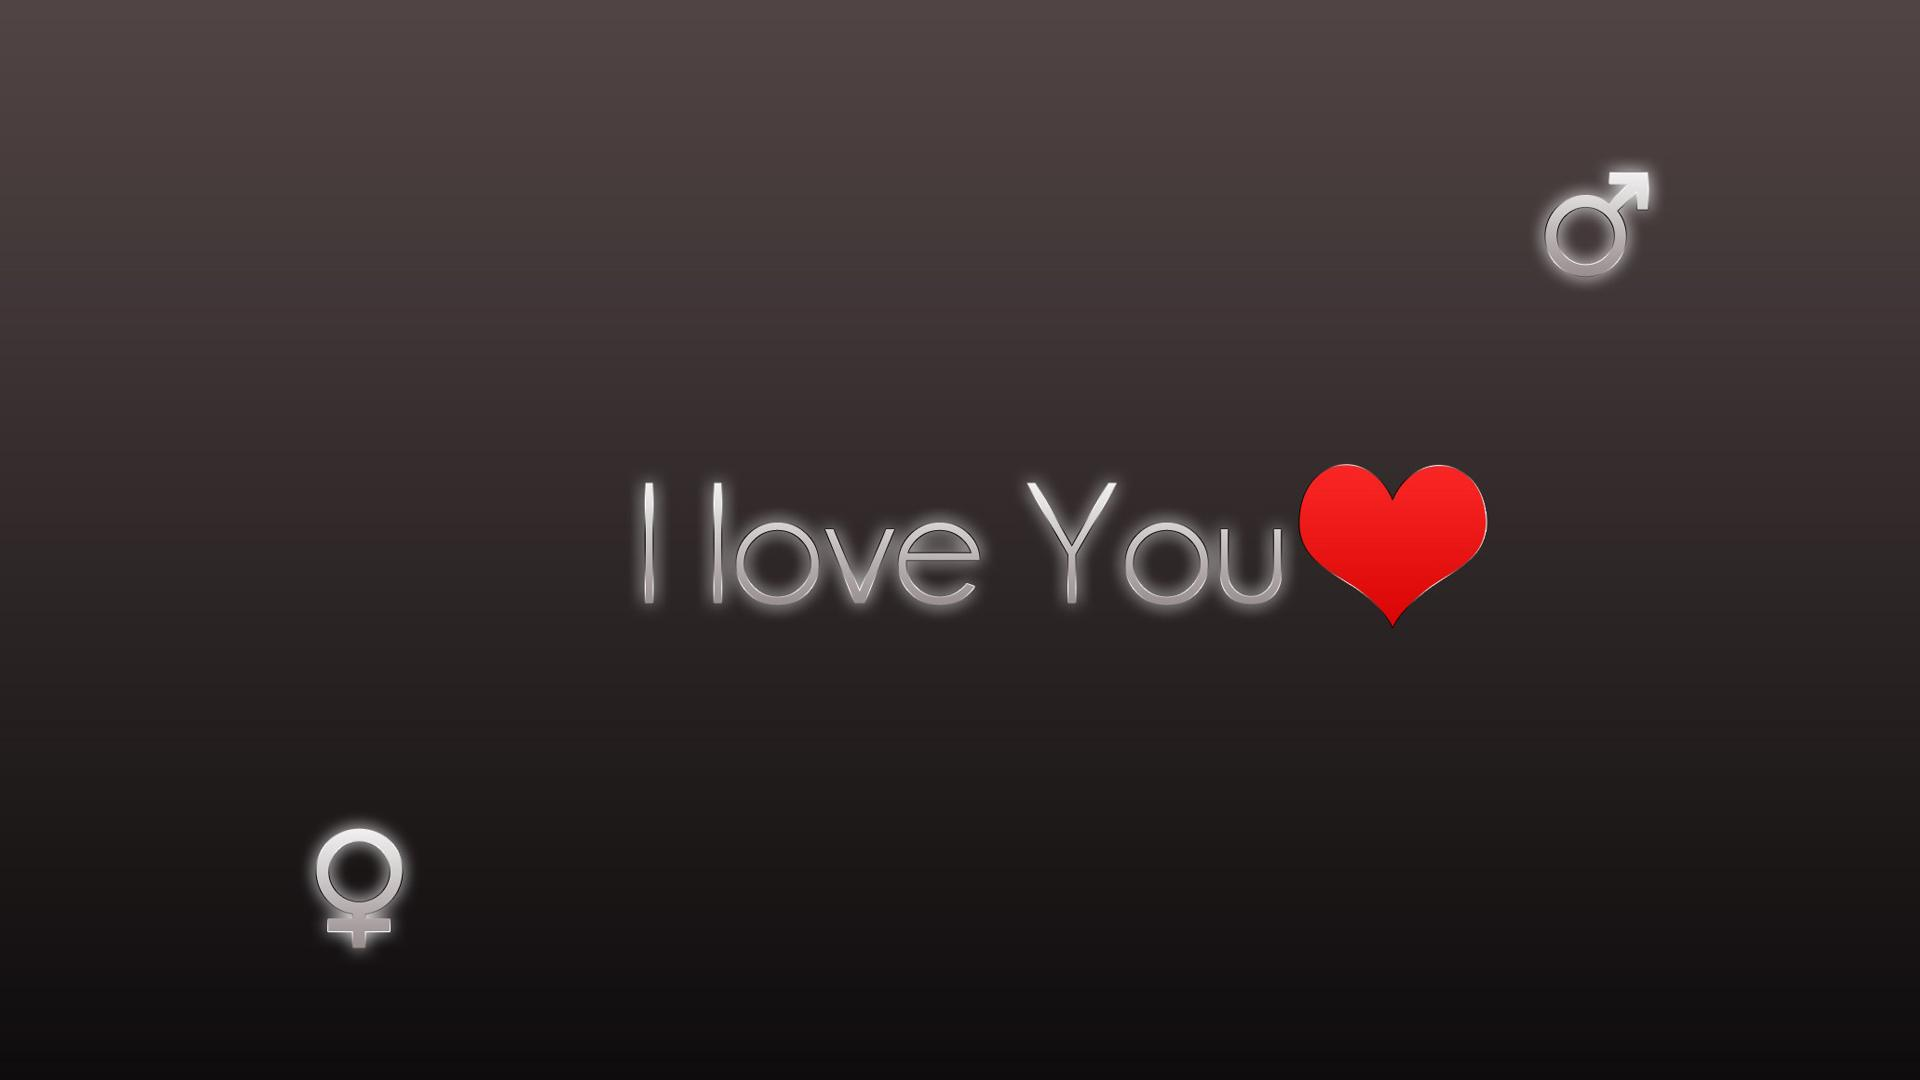 Love Thoughts Wallpapers For Mobile : I Love You Wallpapers With Quotes - Wallpaper cave